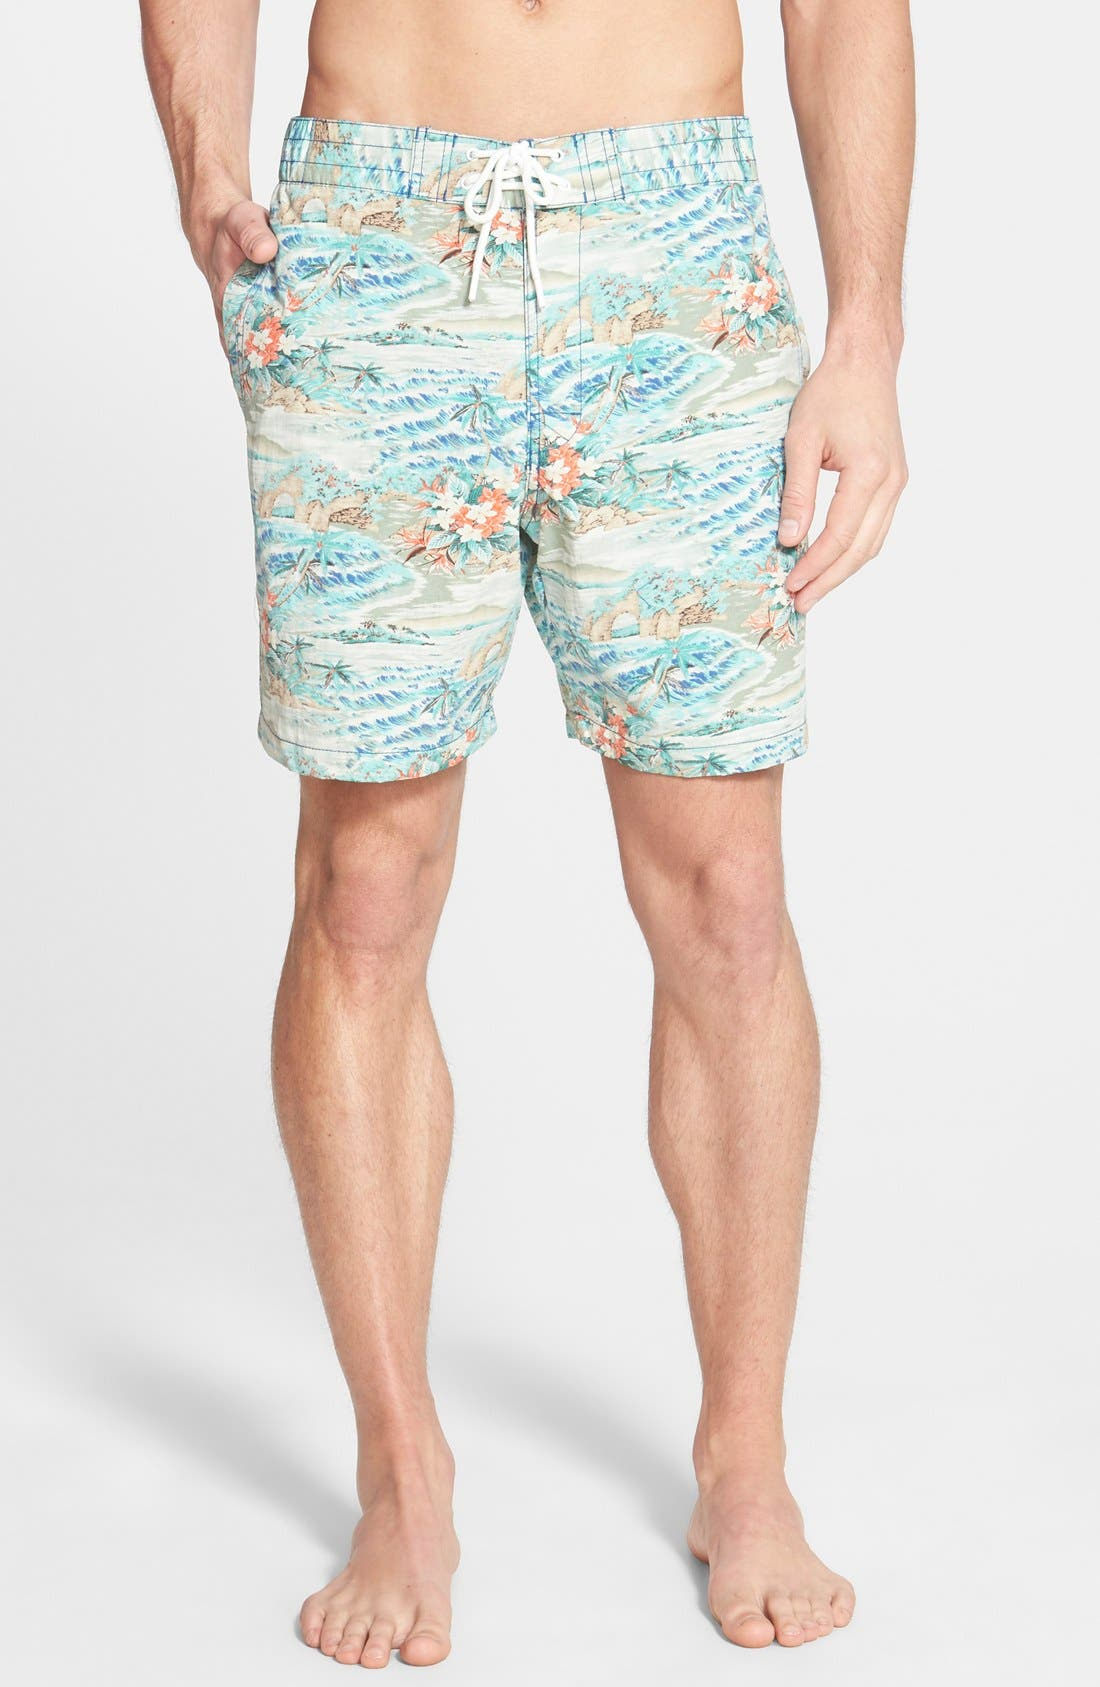 RODD & GUNN 'Black Sands' Board Shorts